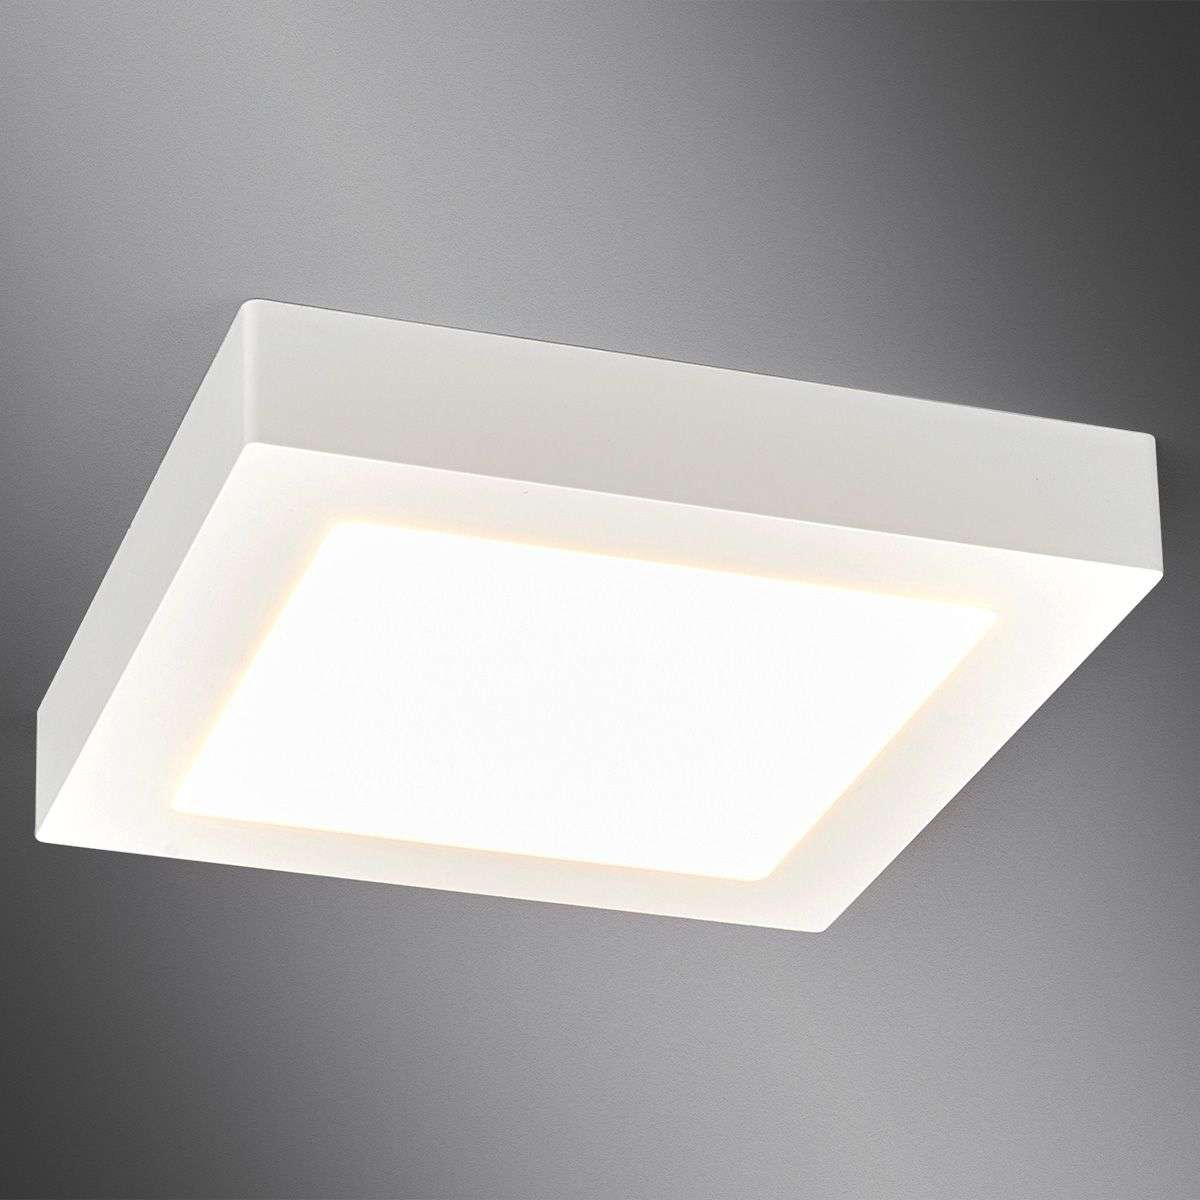 led bathroom ceiling lights. White, Square LED Bathroom Ceiling Light Rayan-9978024-311 Led Lights G